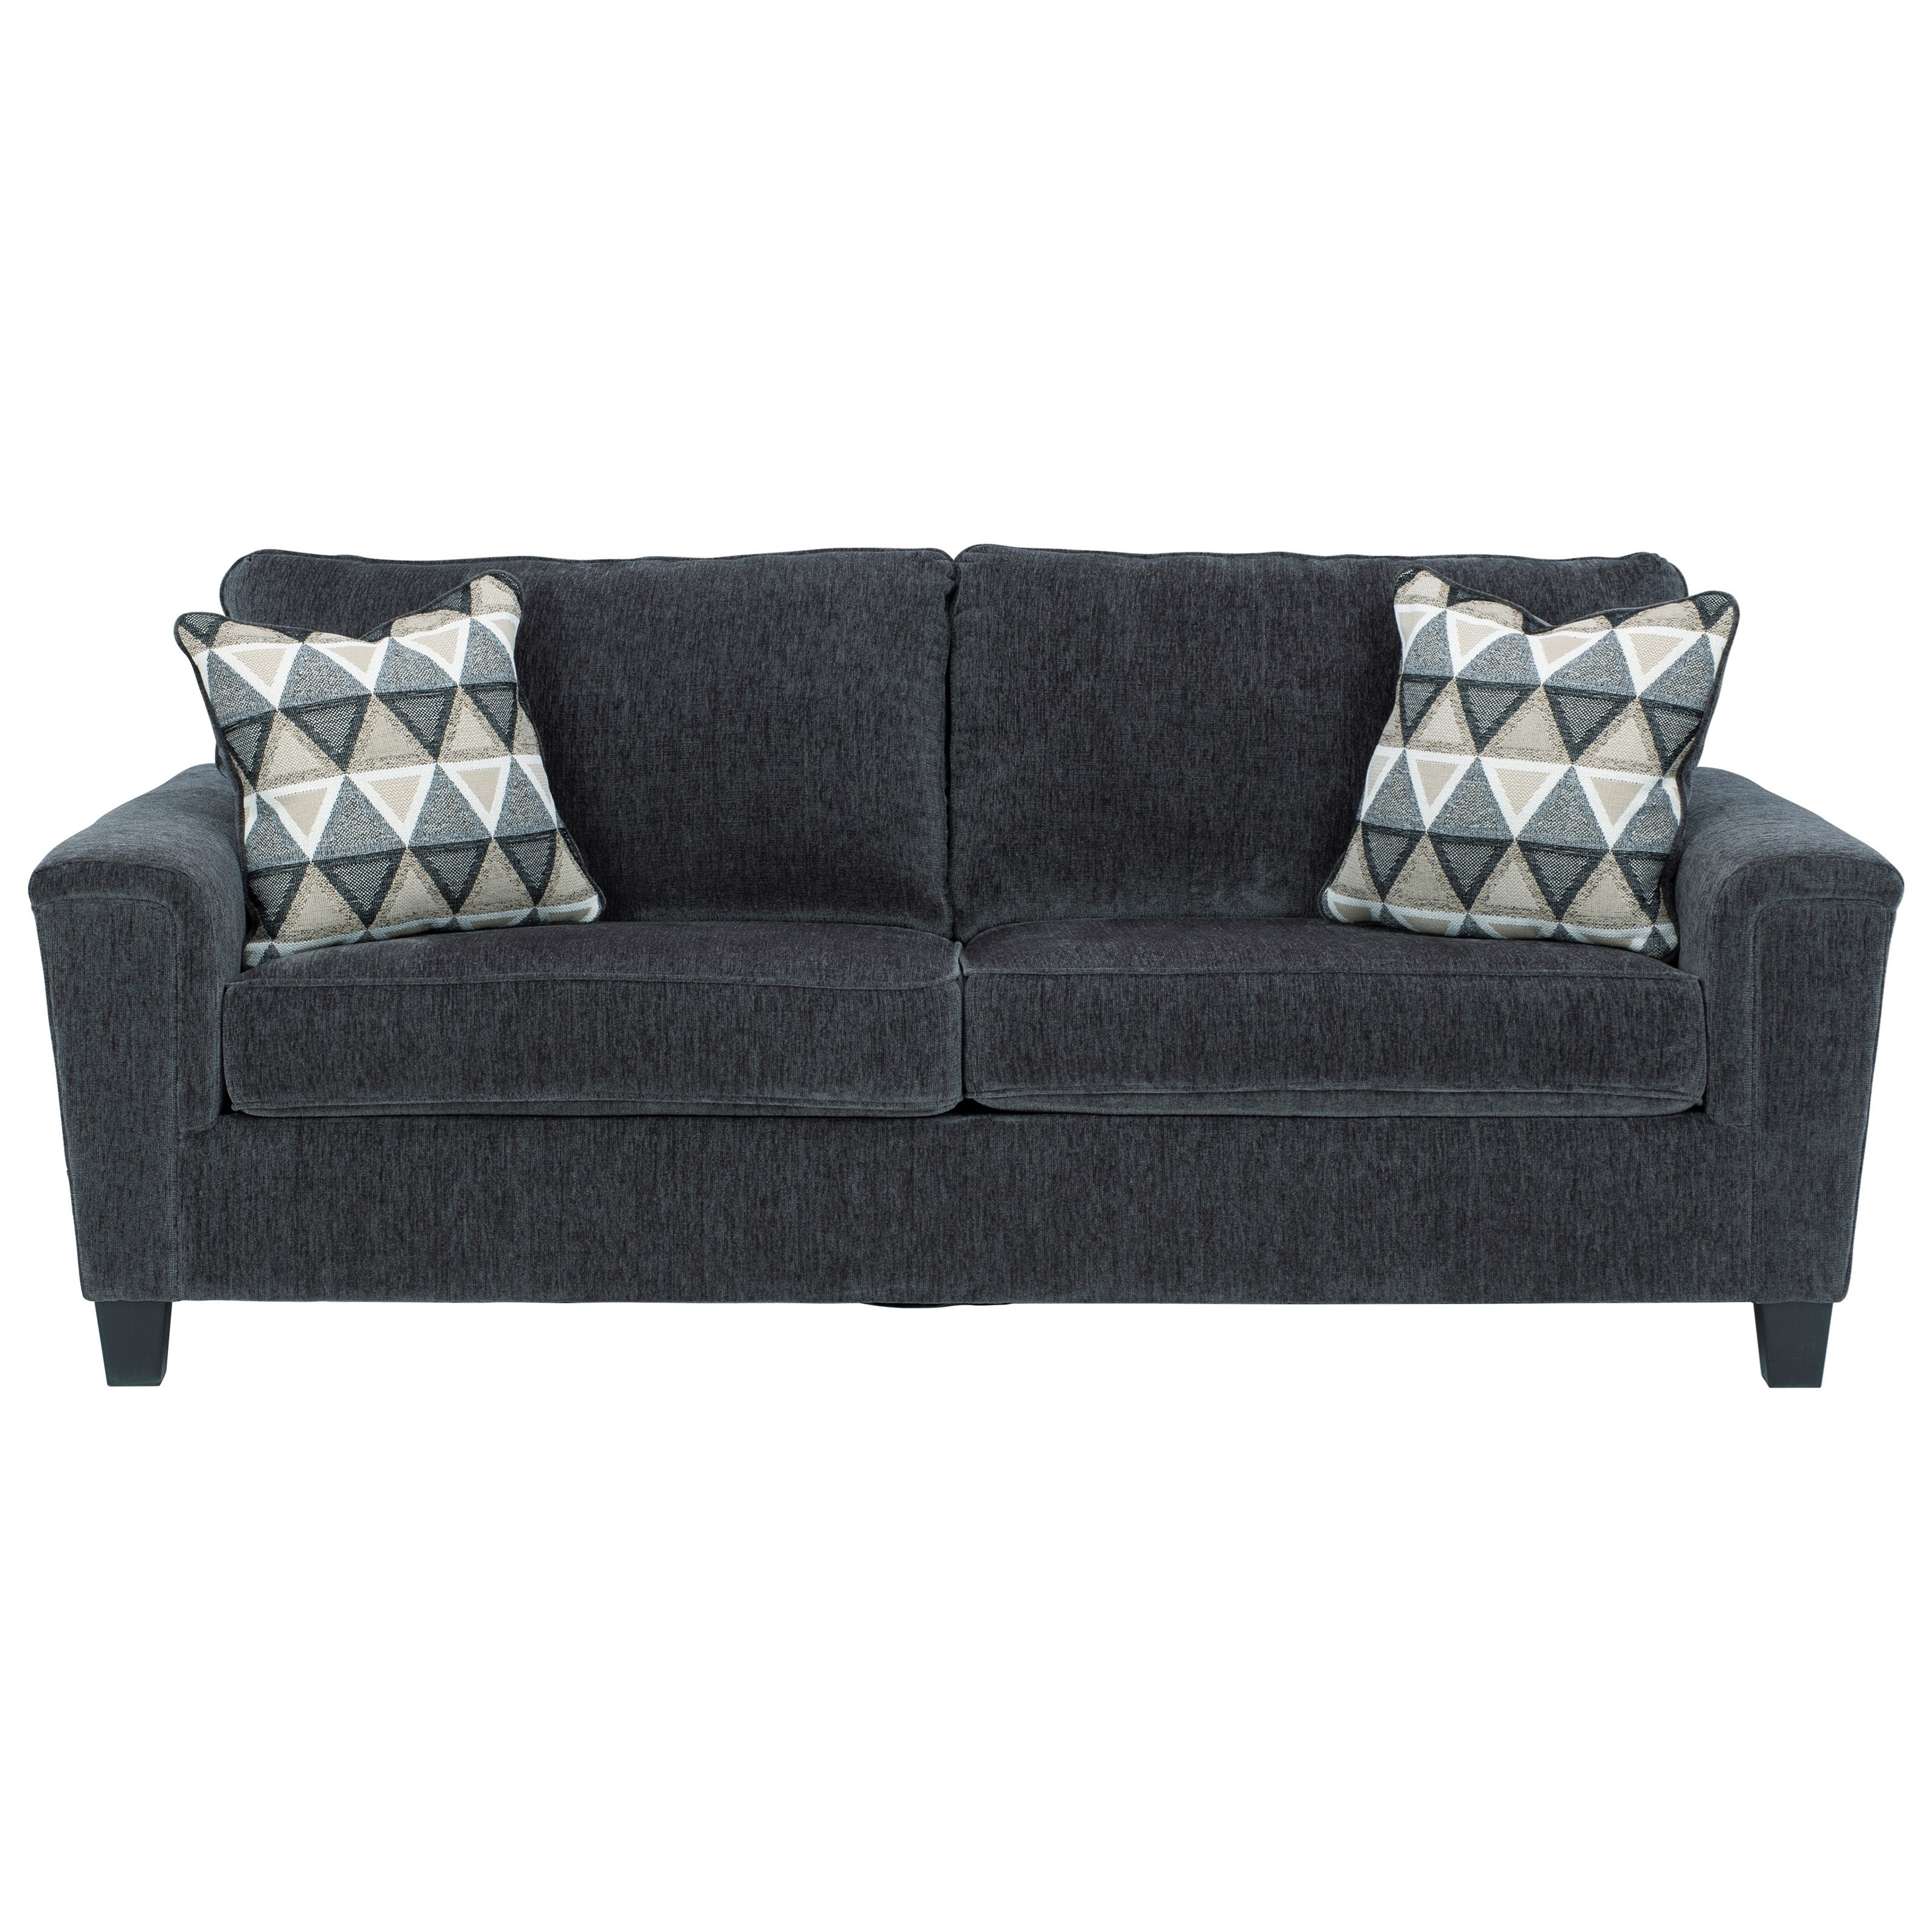 Abinger Sofa by Benchcraft at Virginia Furniture Market